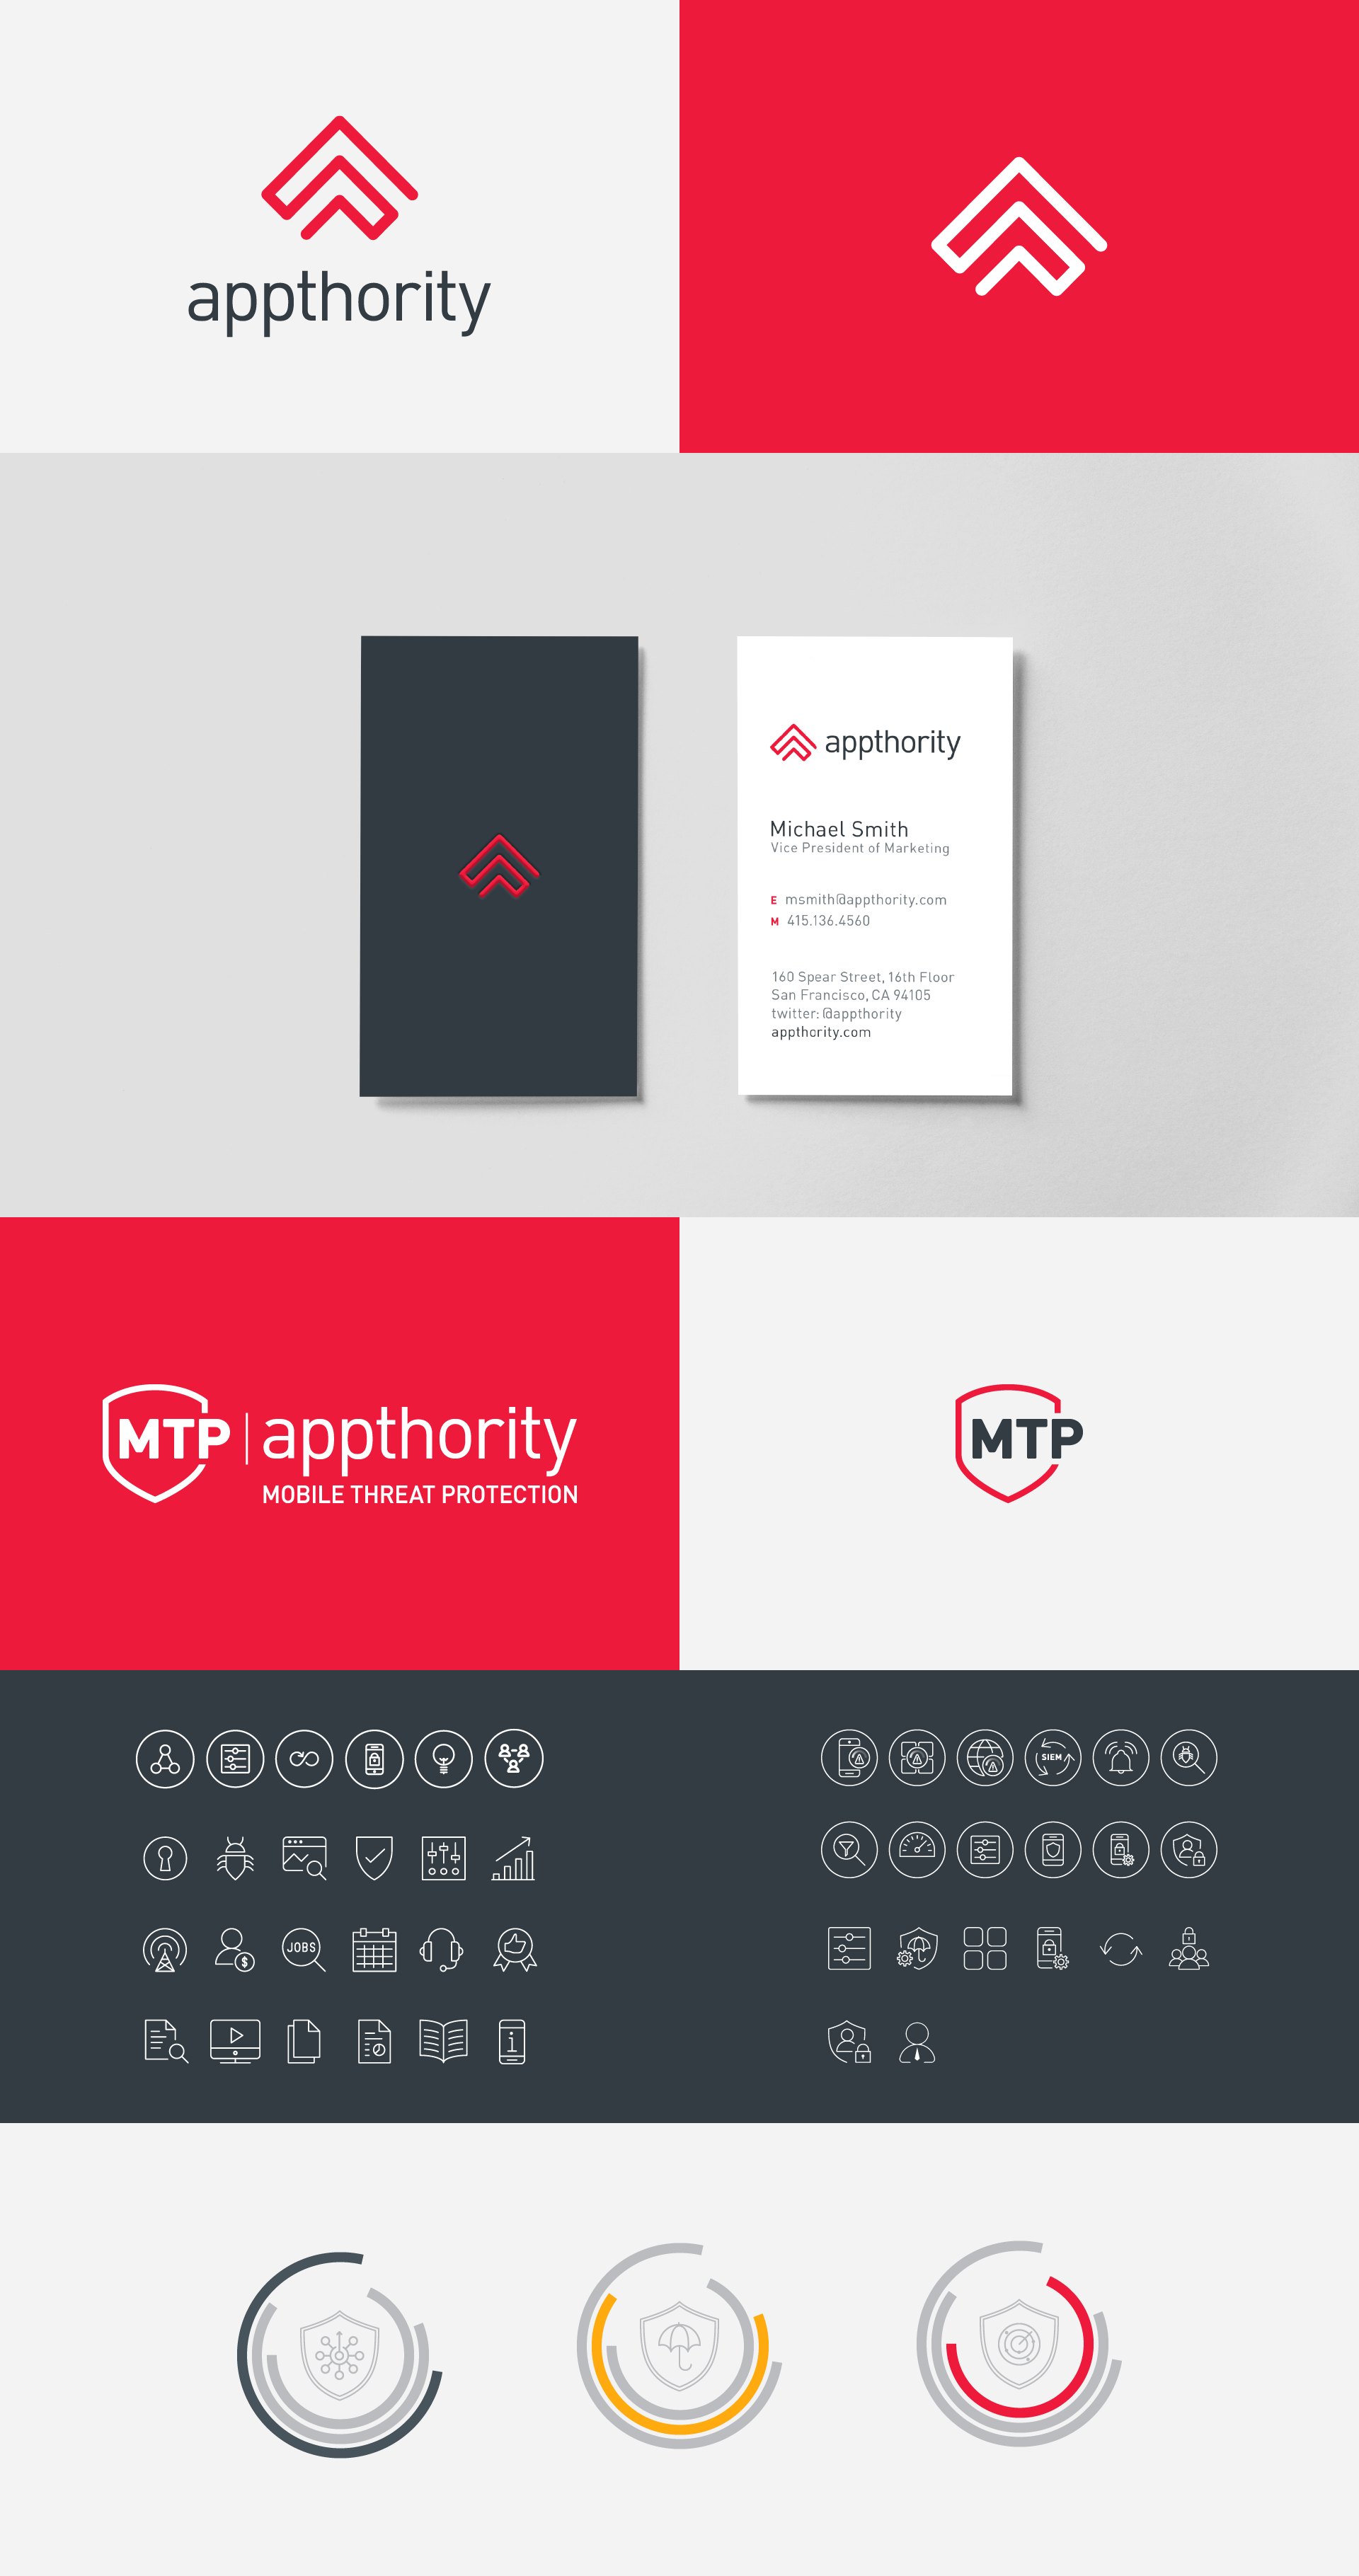 APPTHORITY – enterprise risk management – Meadow Design Inc